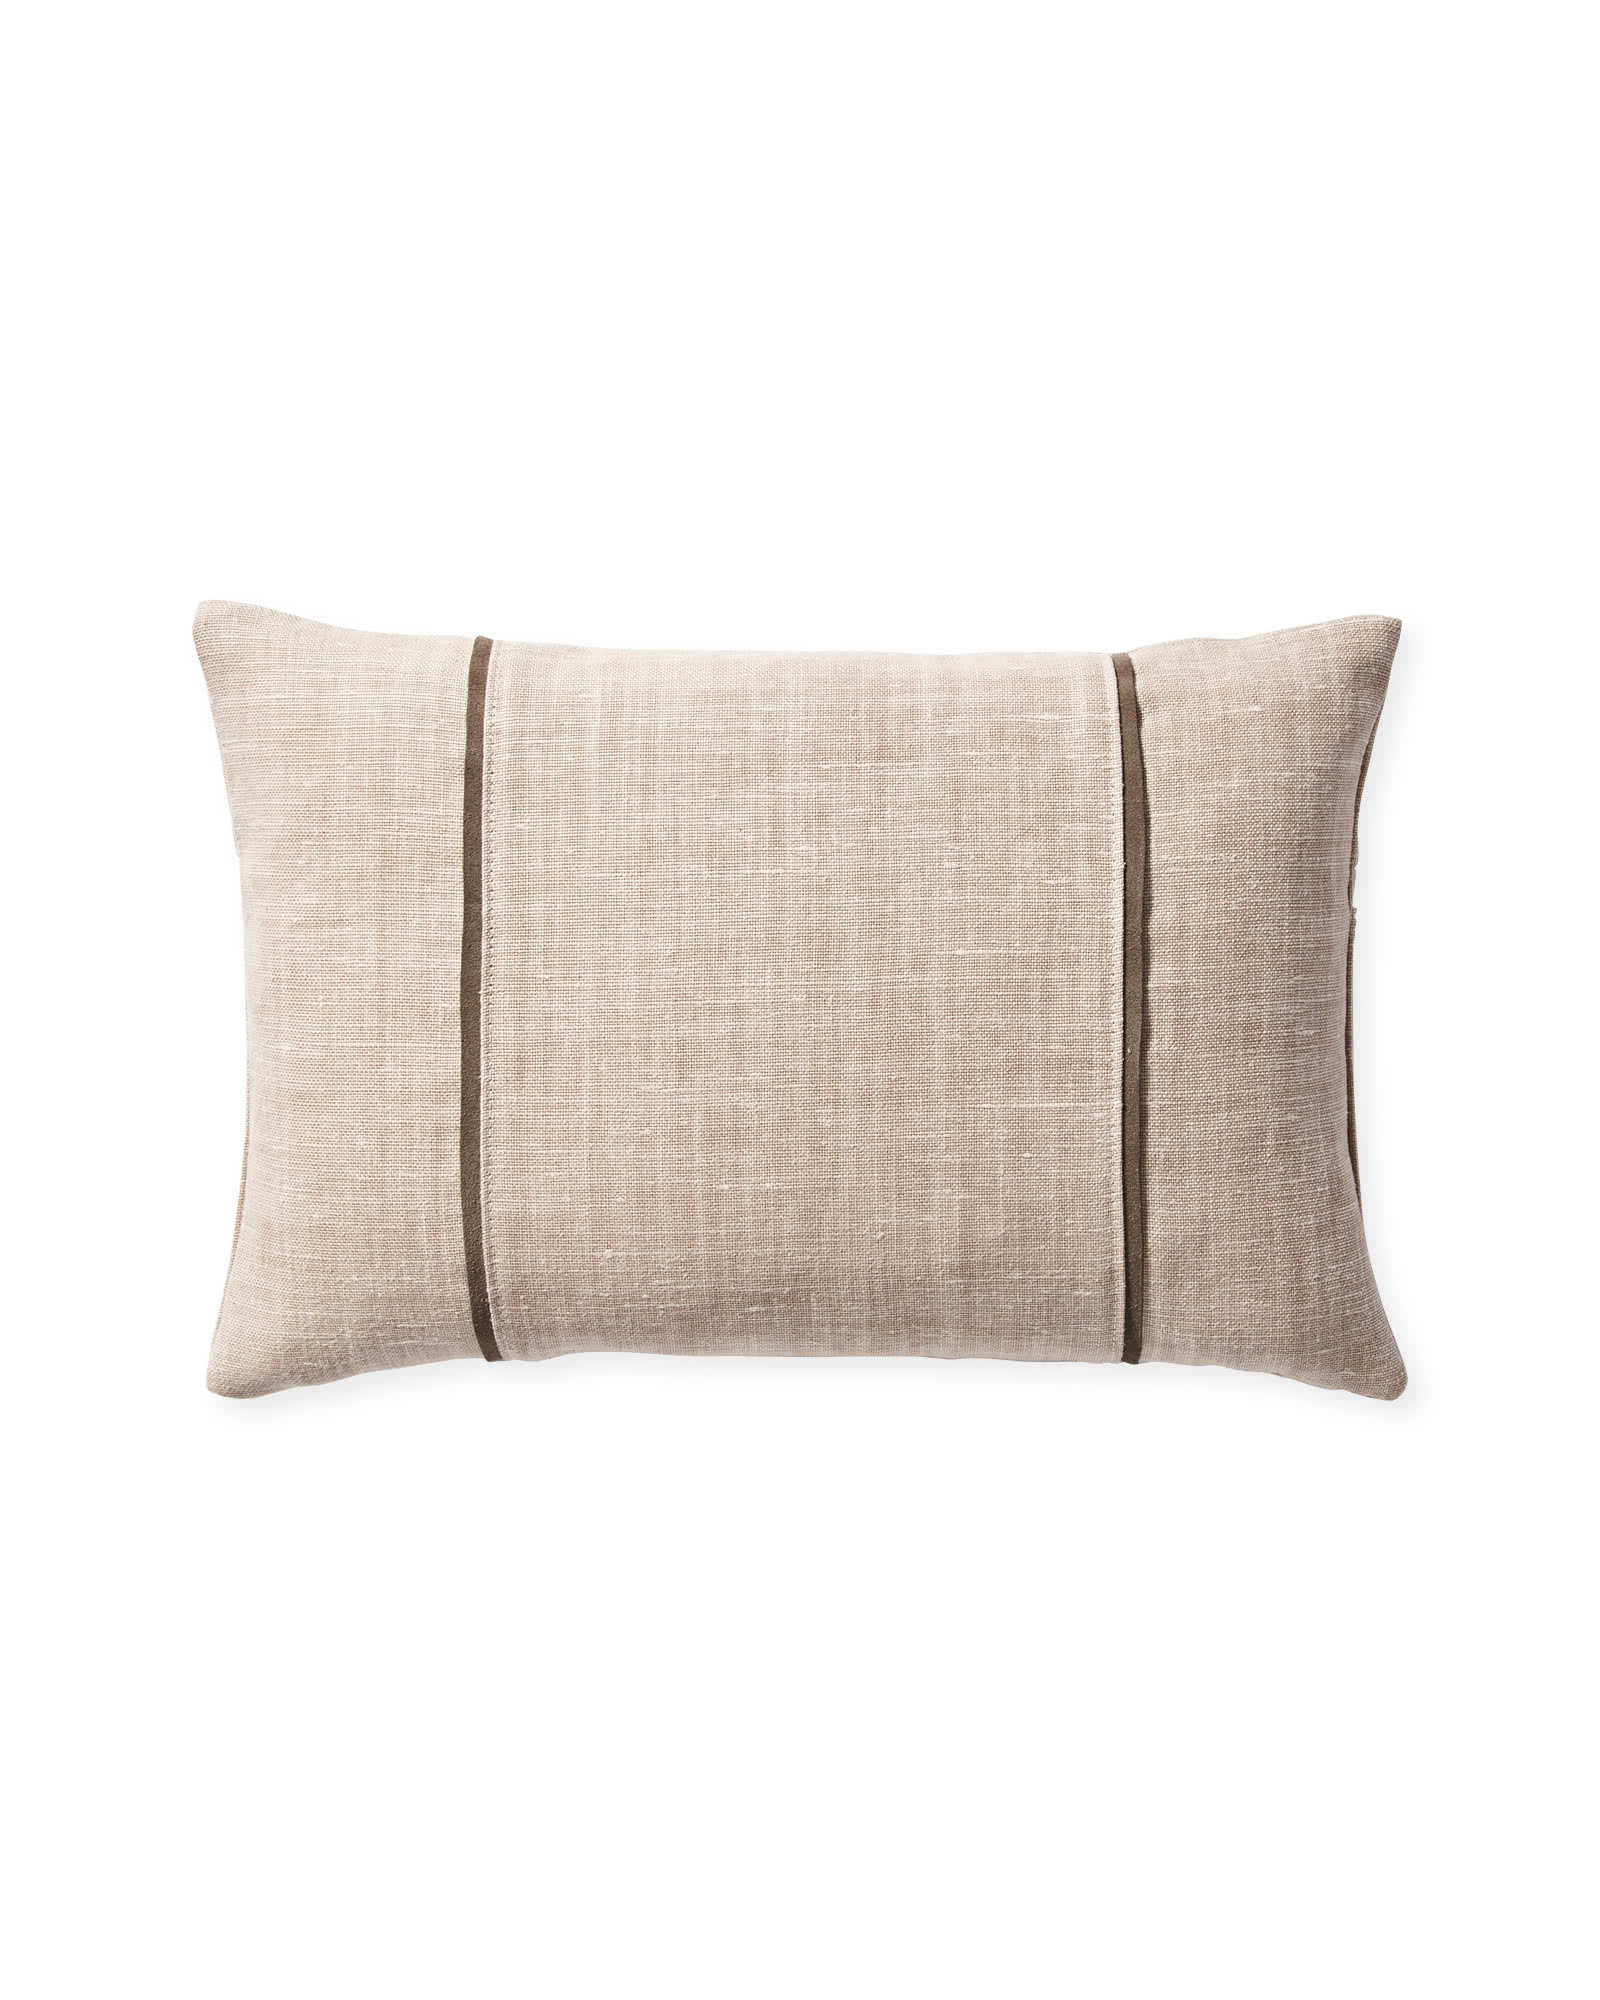 Kentfield Pillow Cover, Pink Sand